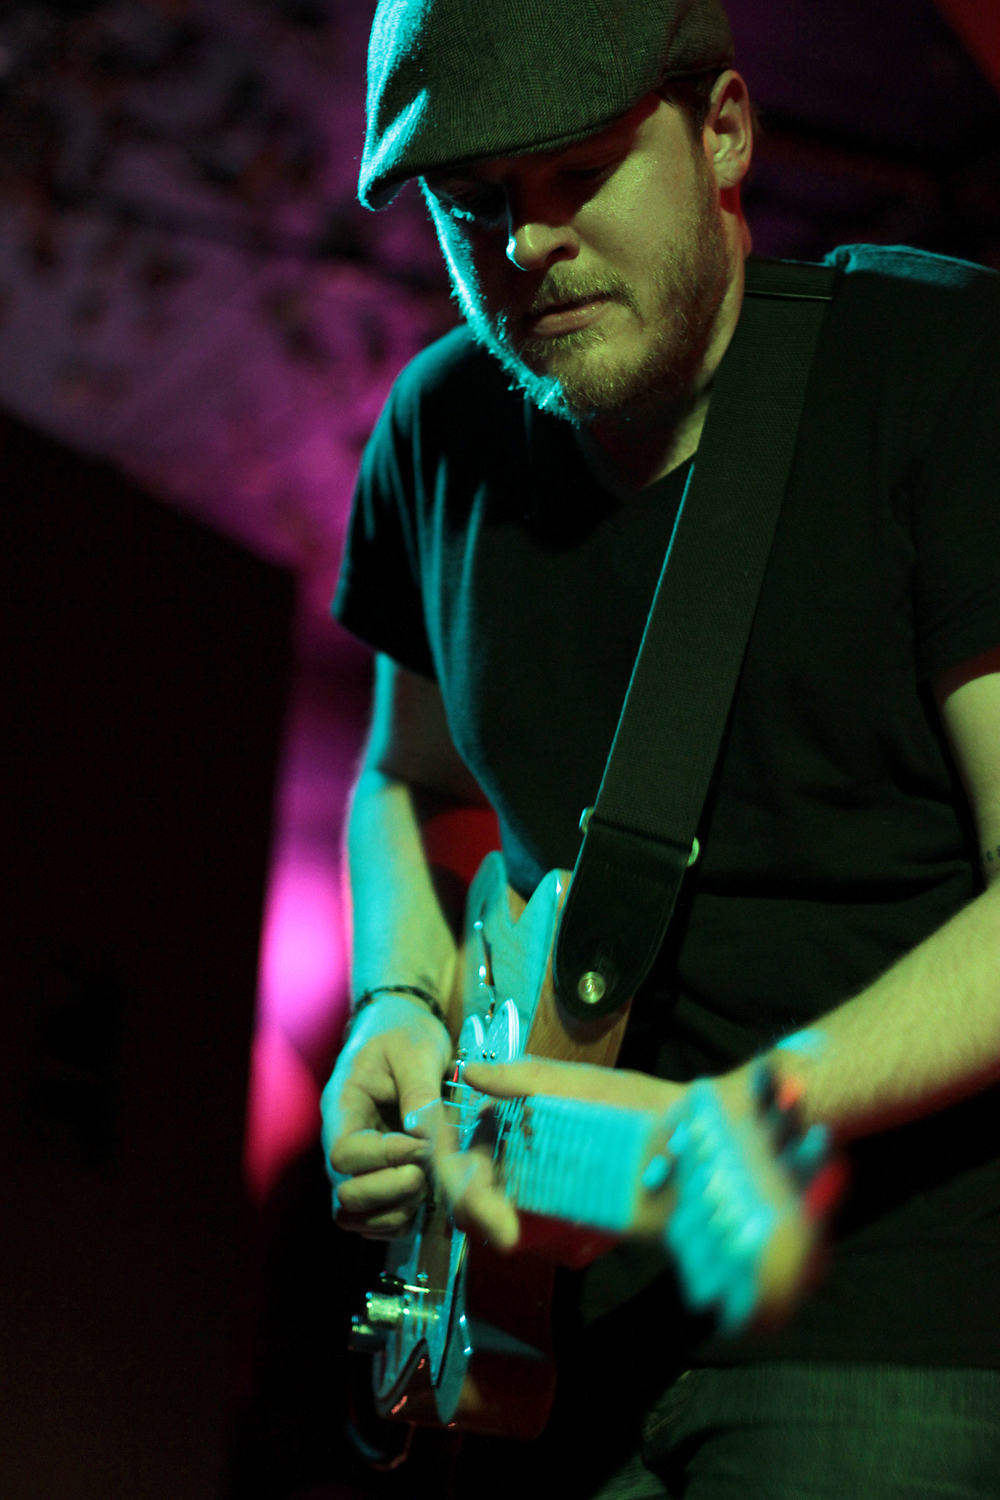 Viper Creek Club guitarist Brandon Jensen at the Comet Tavern in Seattle.